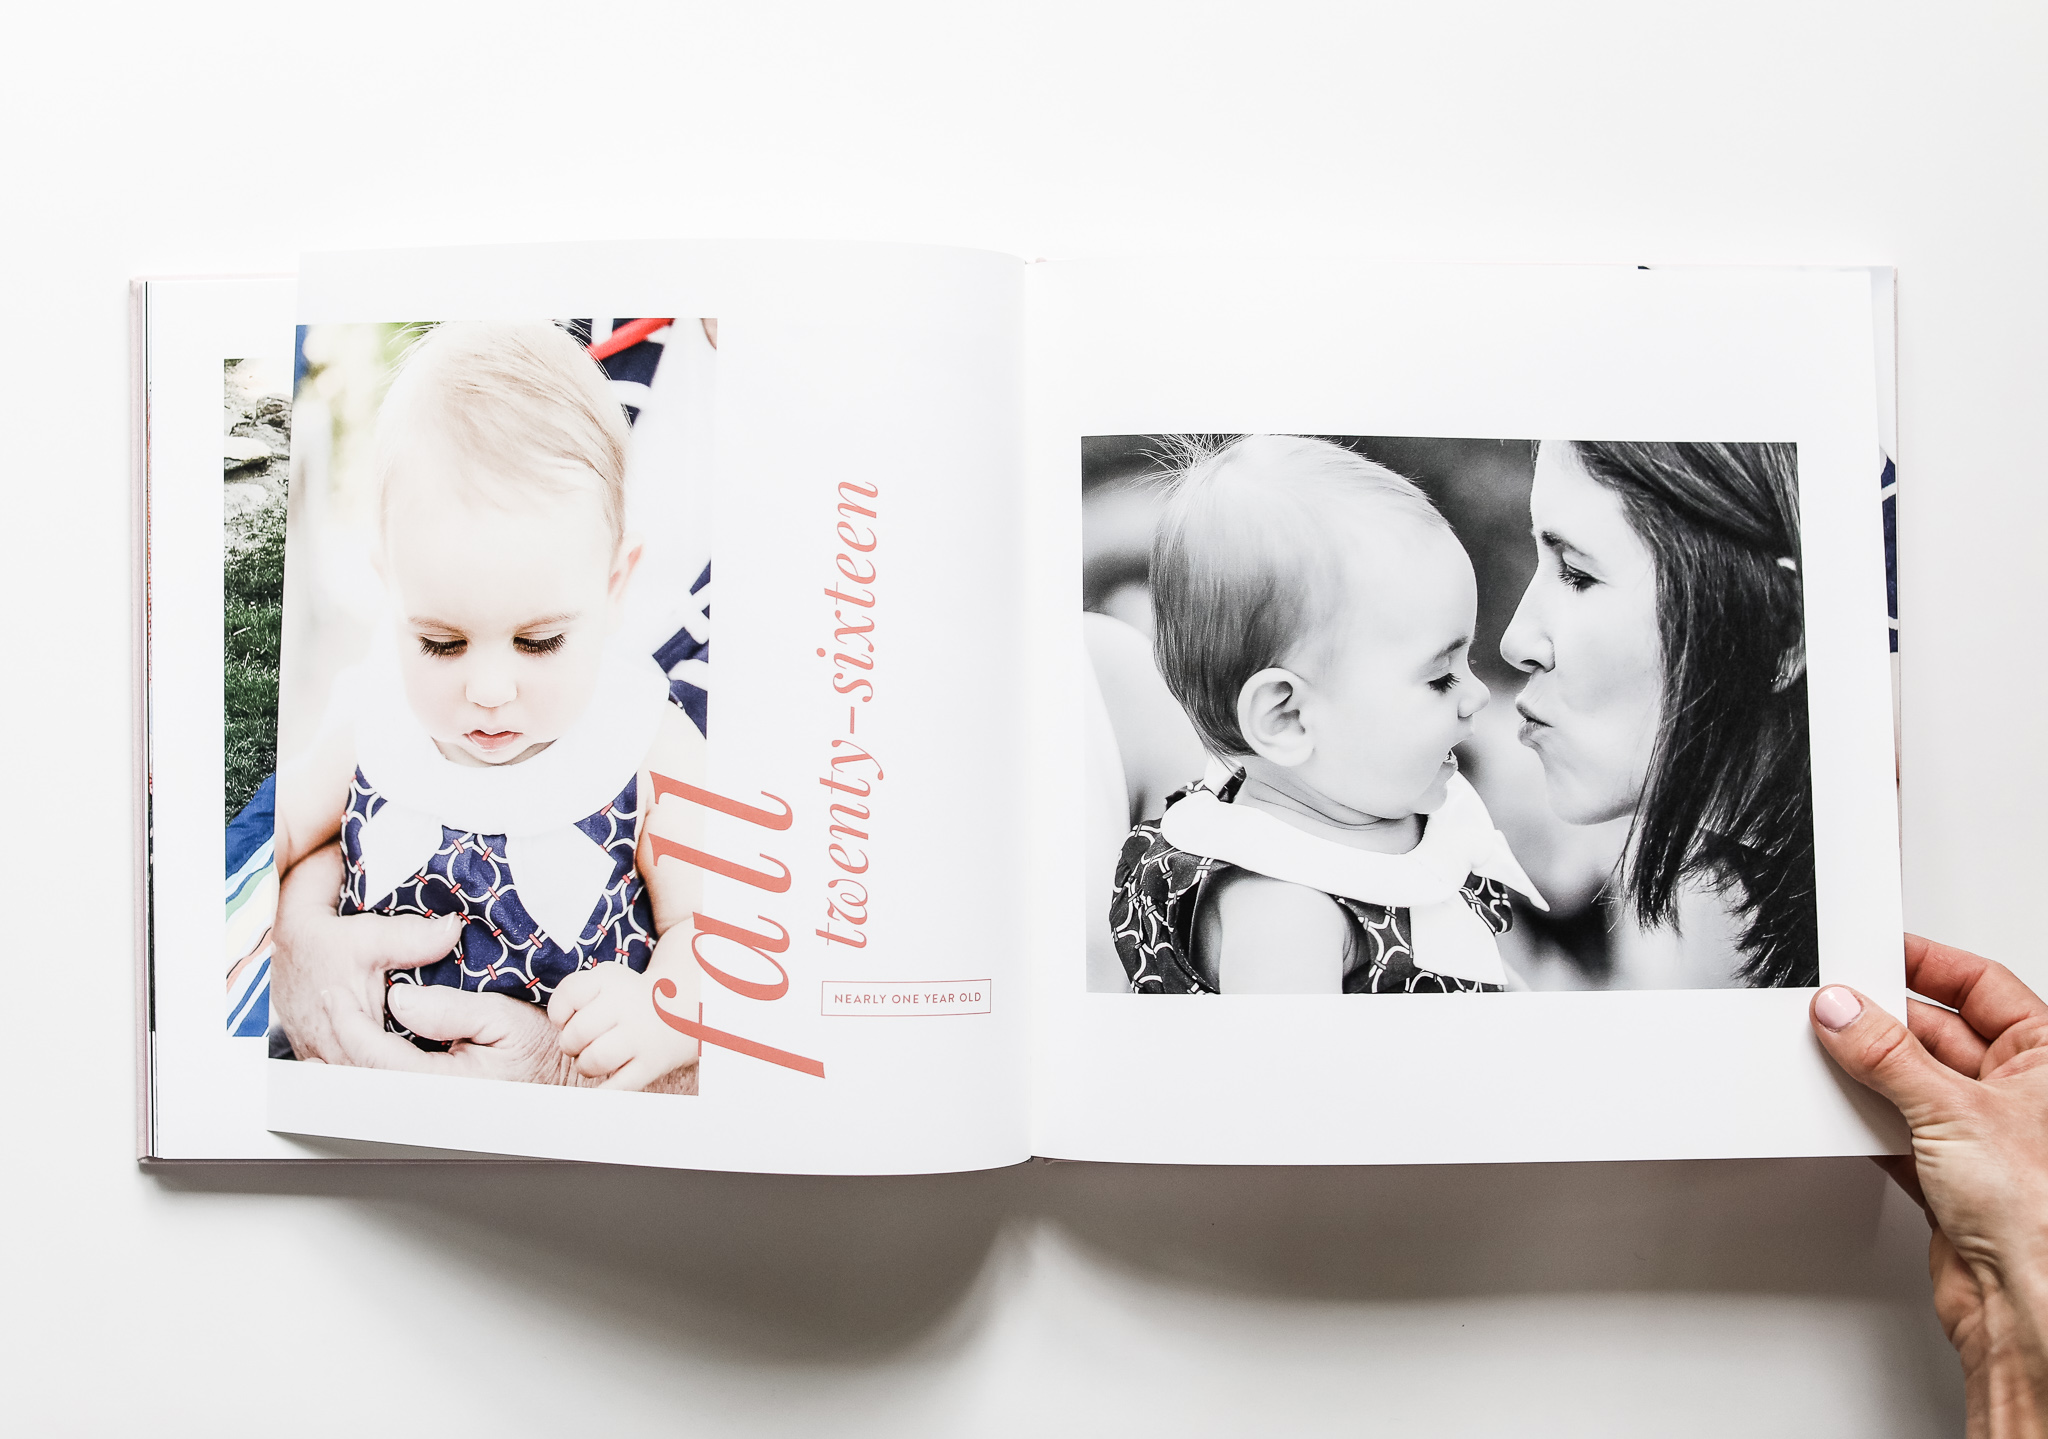 How to select organize, narrow down, and select photos for a photo book